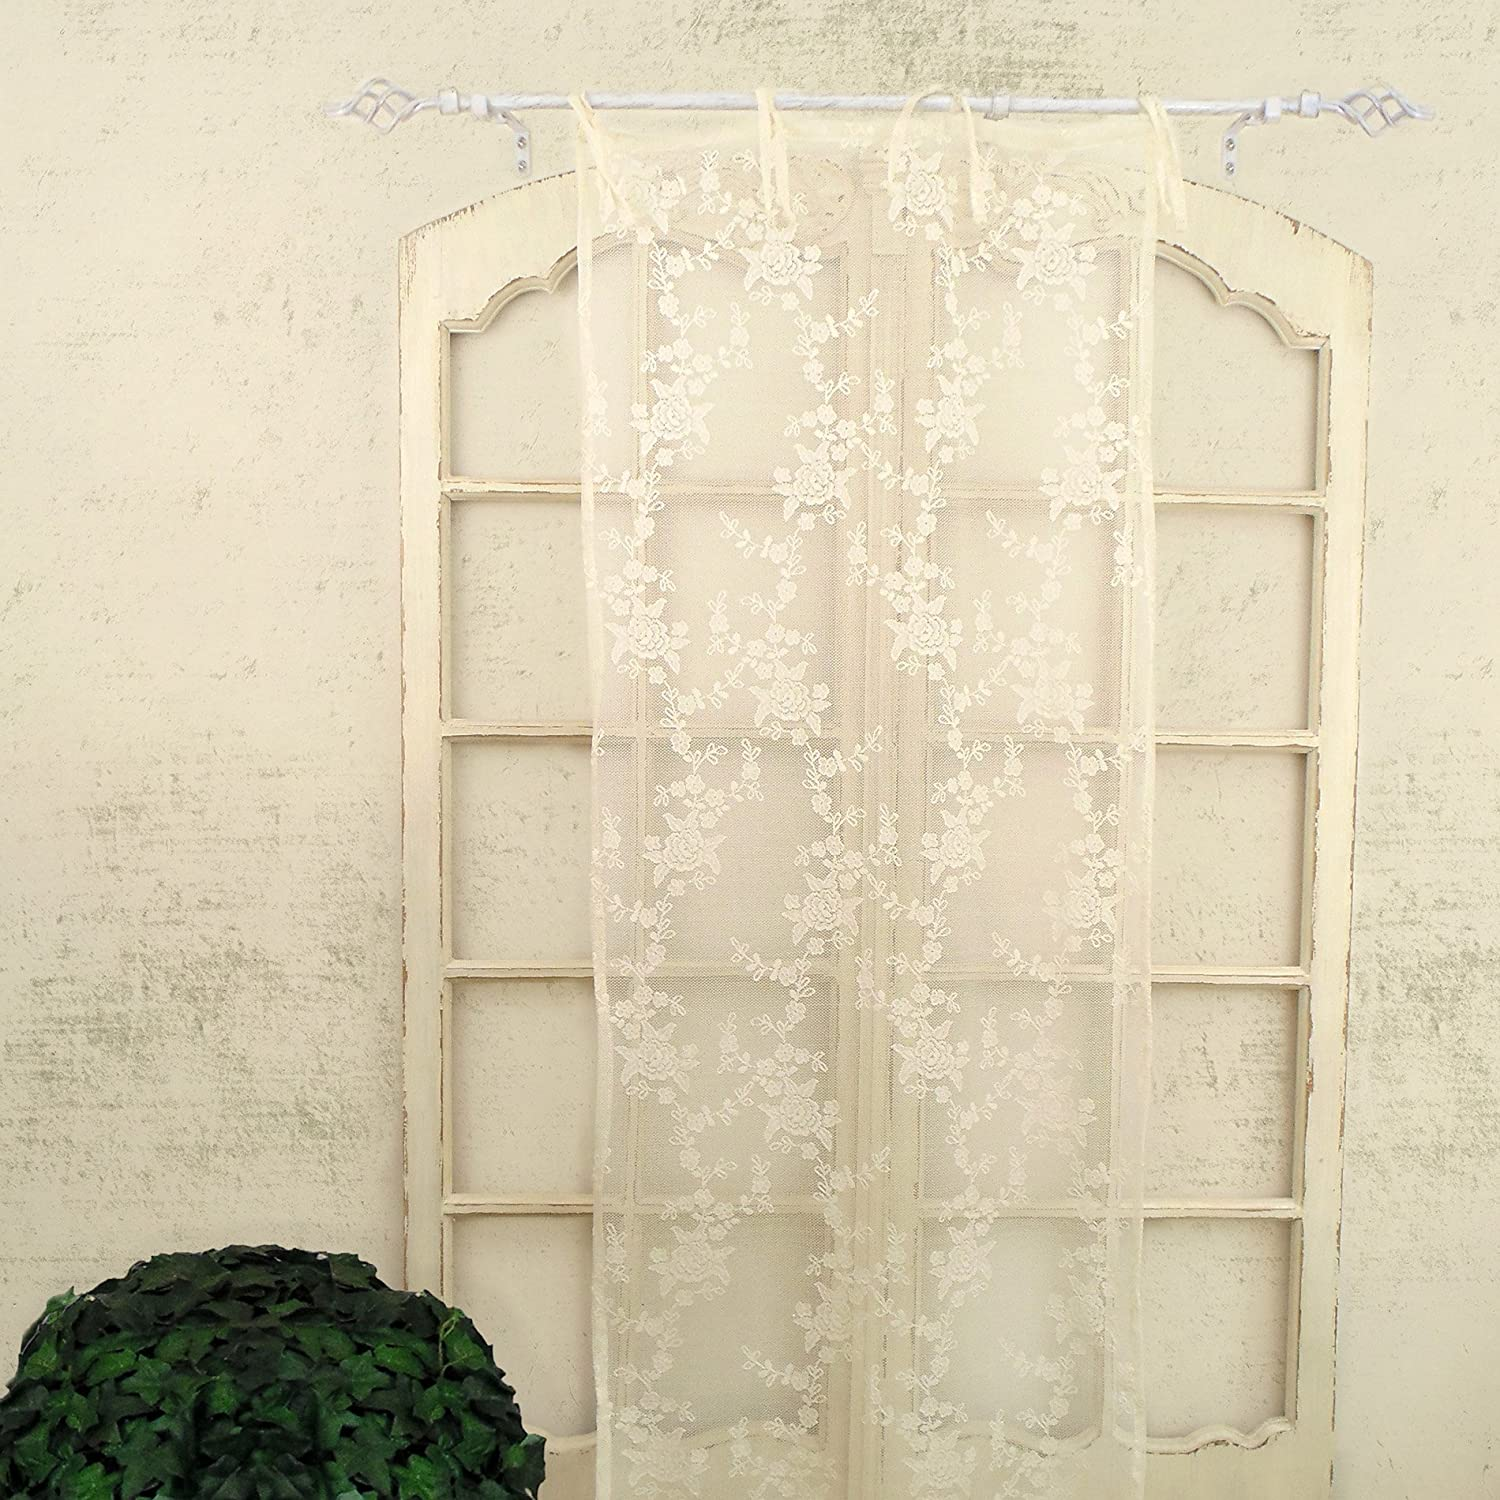 Tenda Finestra Pizzo Poliestere Shabby Chic Poly-Ciel Collection 60 x 220 Colore Avorio AT17